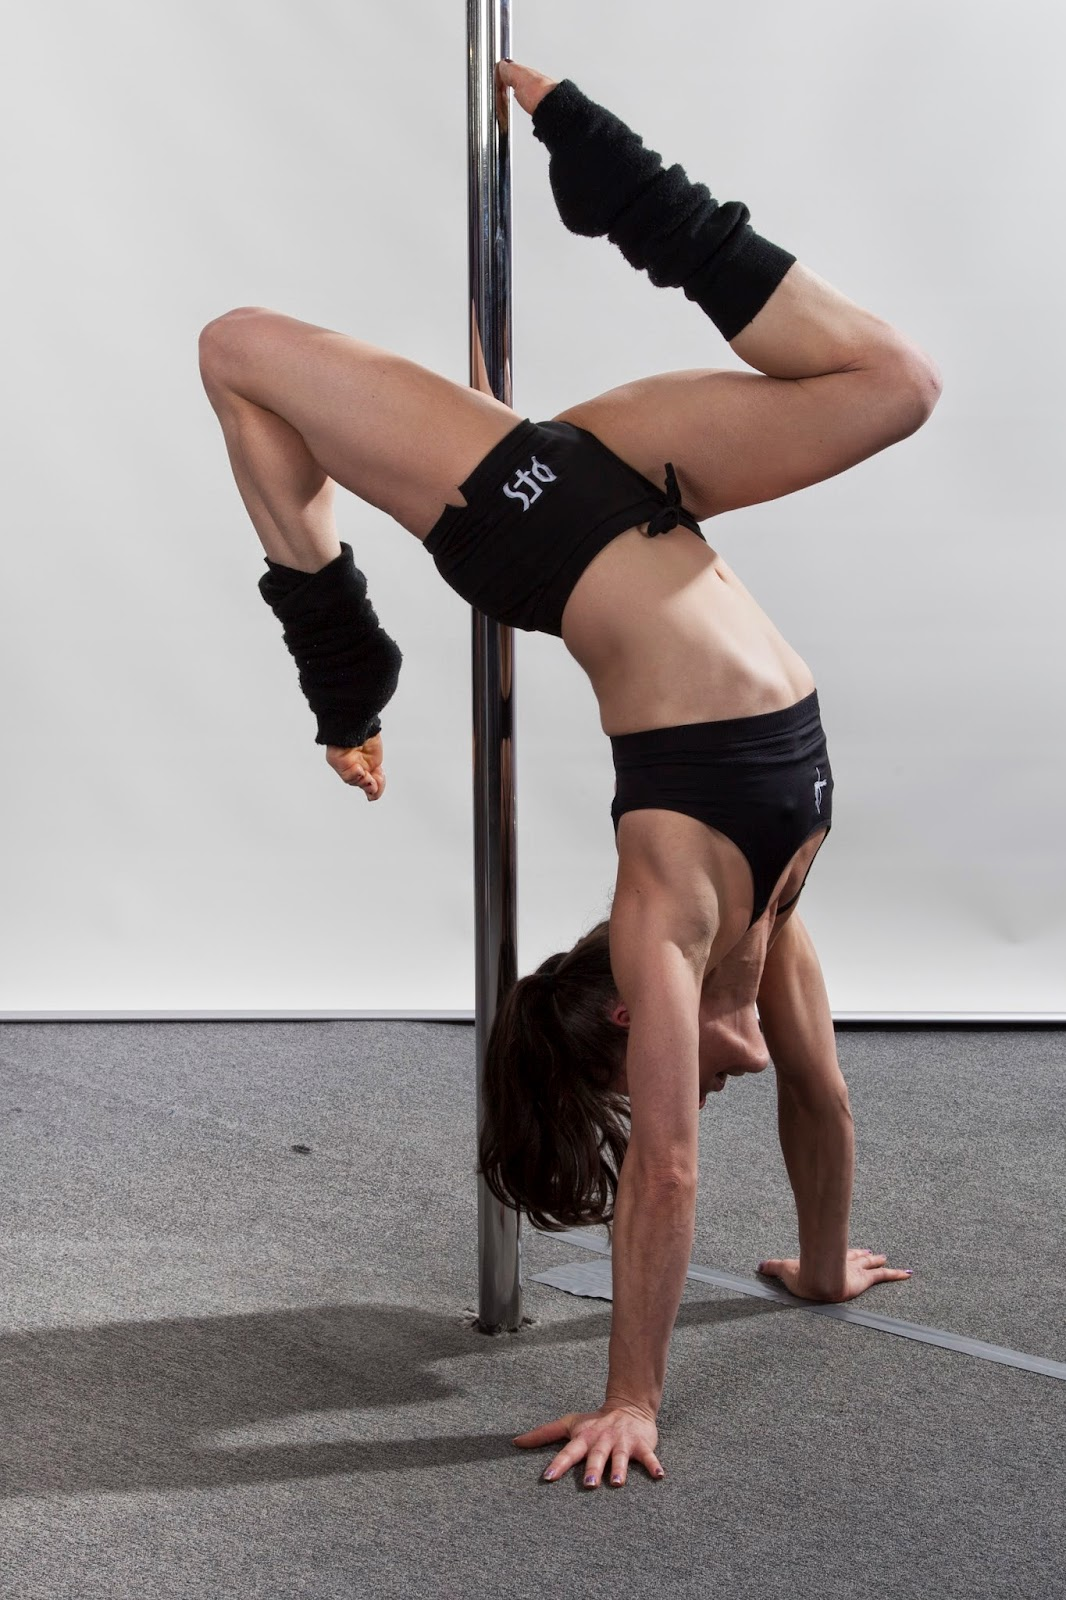 vertical pole gymnastics